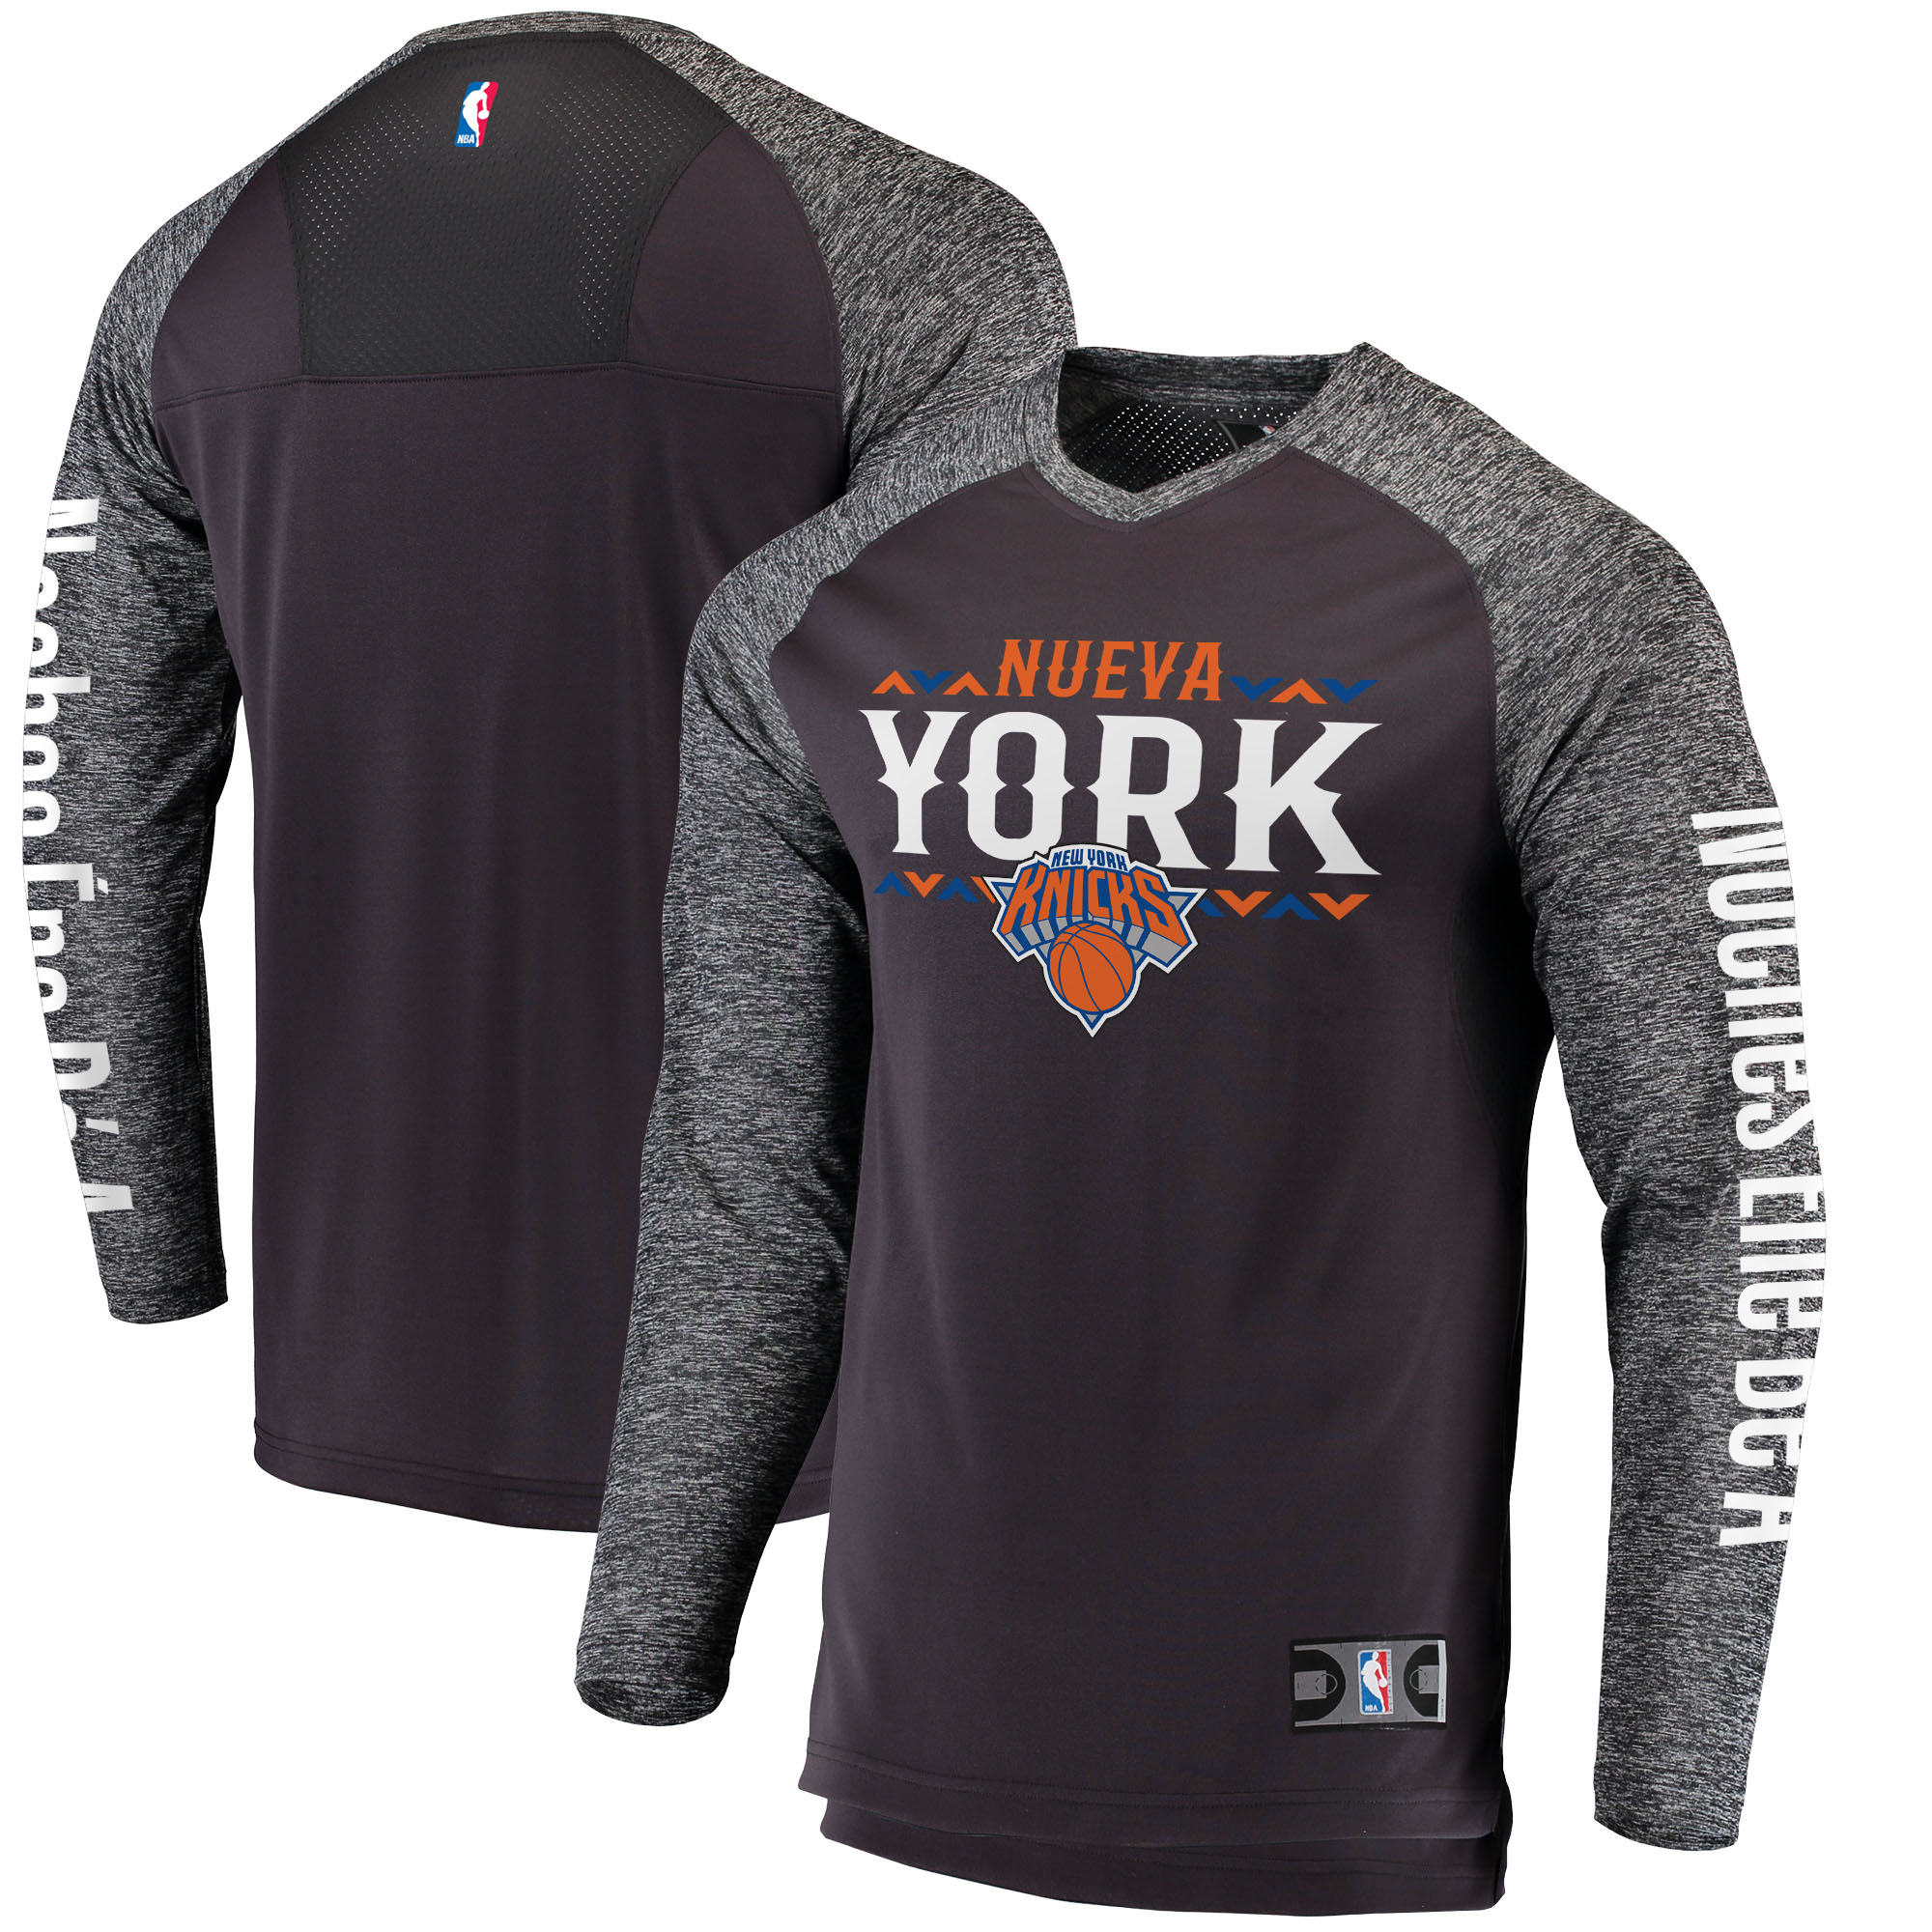 New York Knicks Fanatics Branded Noches Ene-Be-A Authentic Long Sleeve Shooting Shirt - Black/Heathered Gray